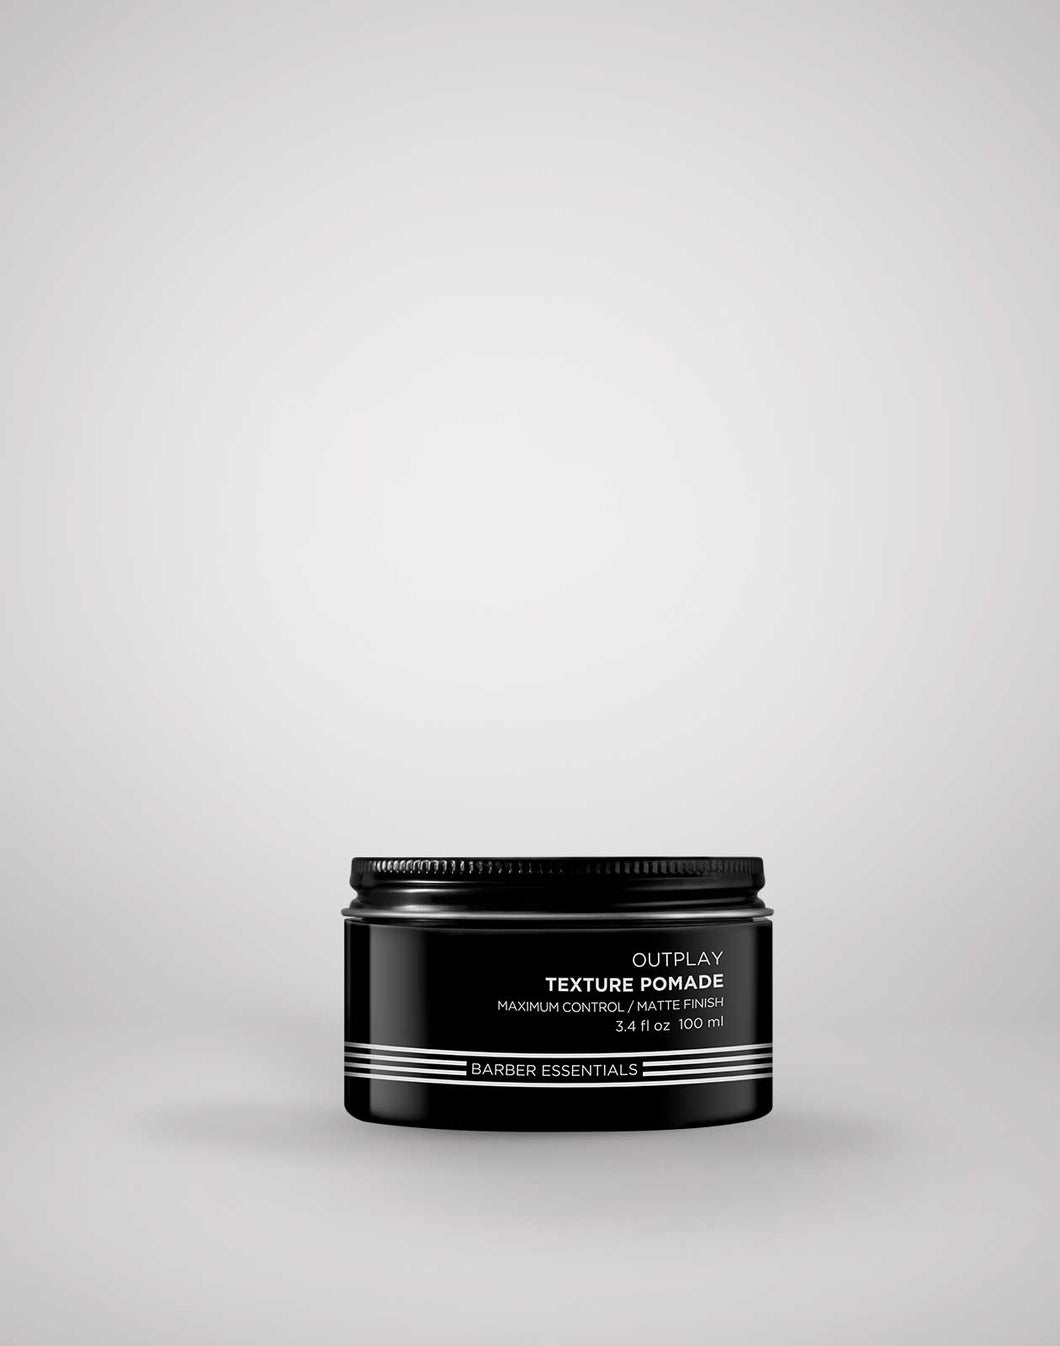 Outplay Texture Pomade